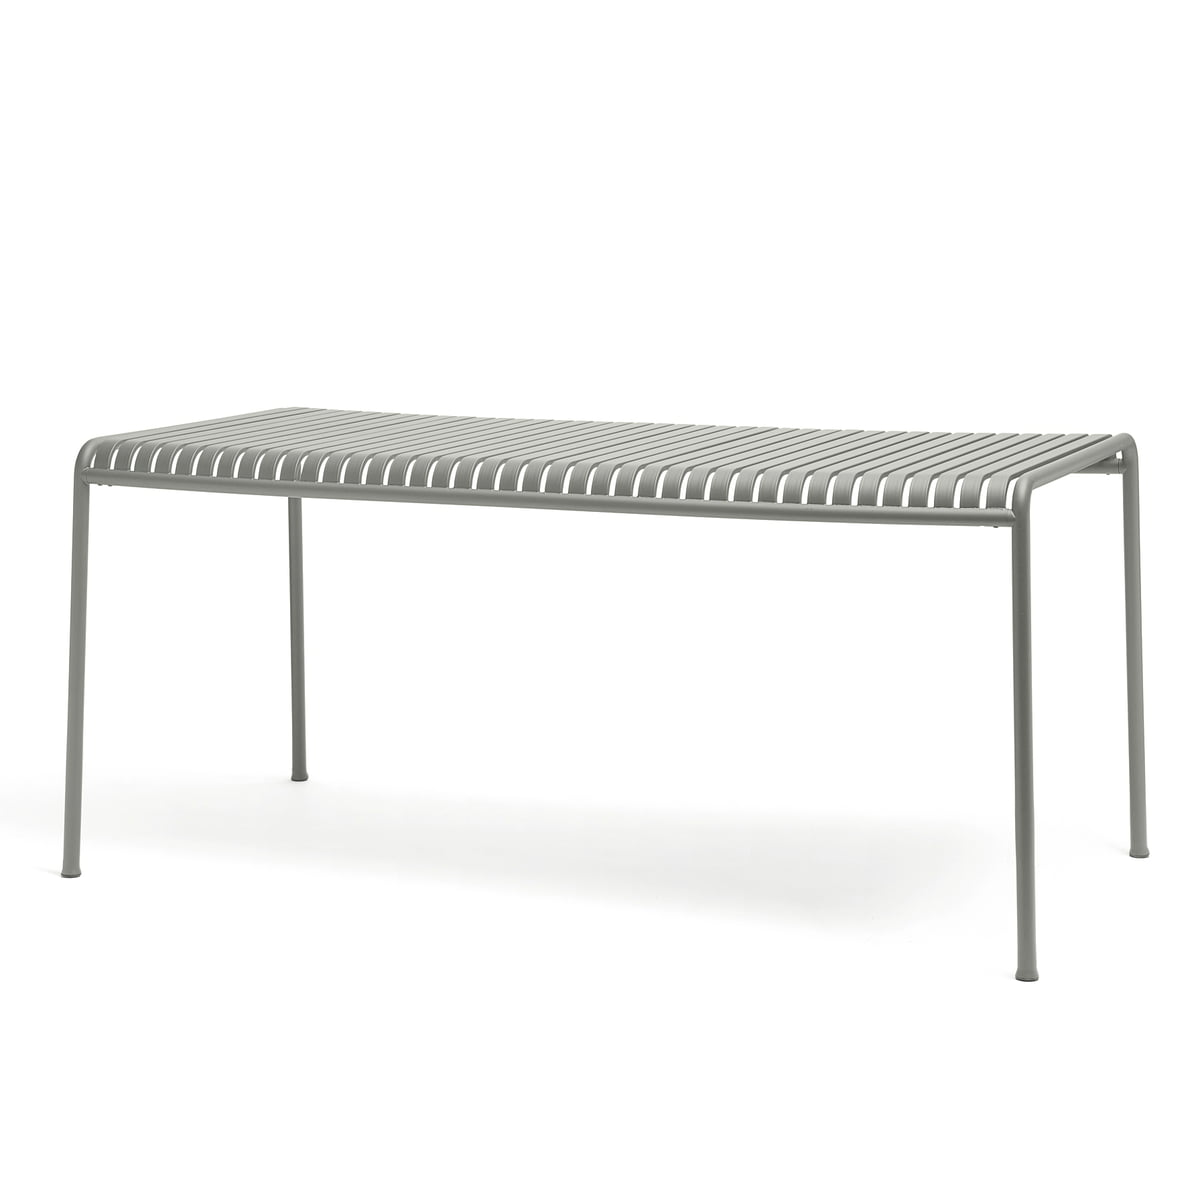 The Palissade Table By Hay In Light Grey, Measuring 160 X 80 Cm